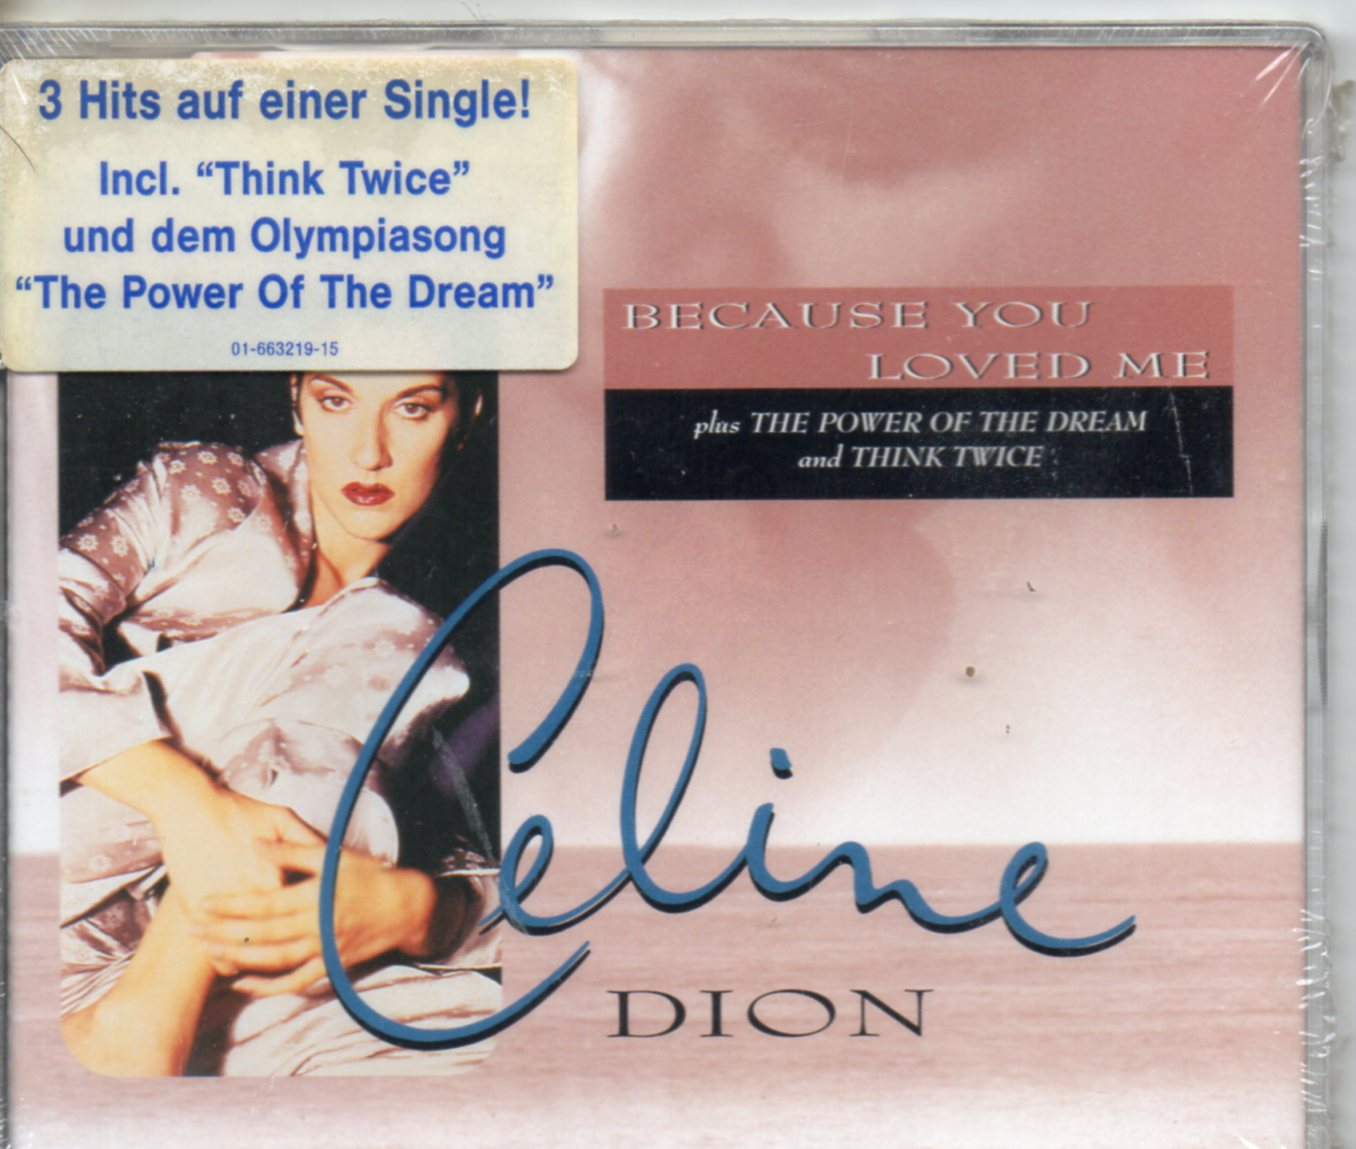 Because You Loved Me 4-track Jewel Case - Celine DION / Soundtrack up close &amp; personal